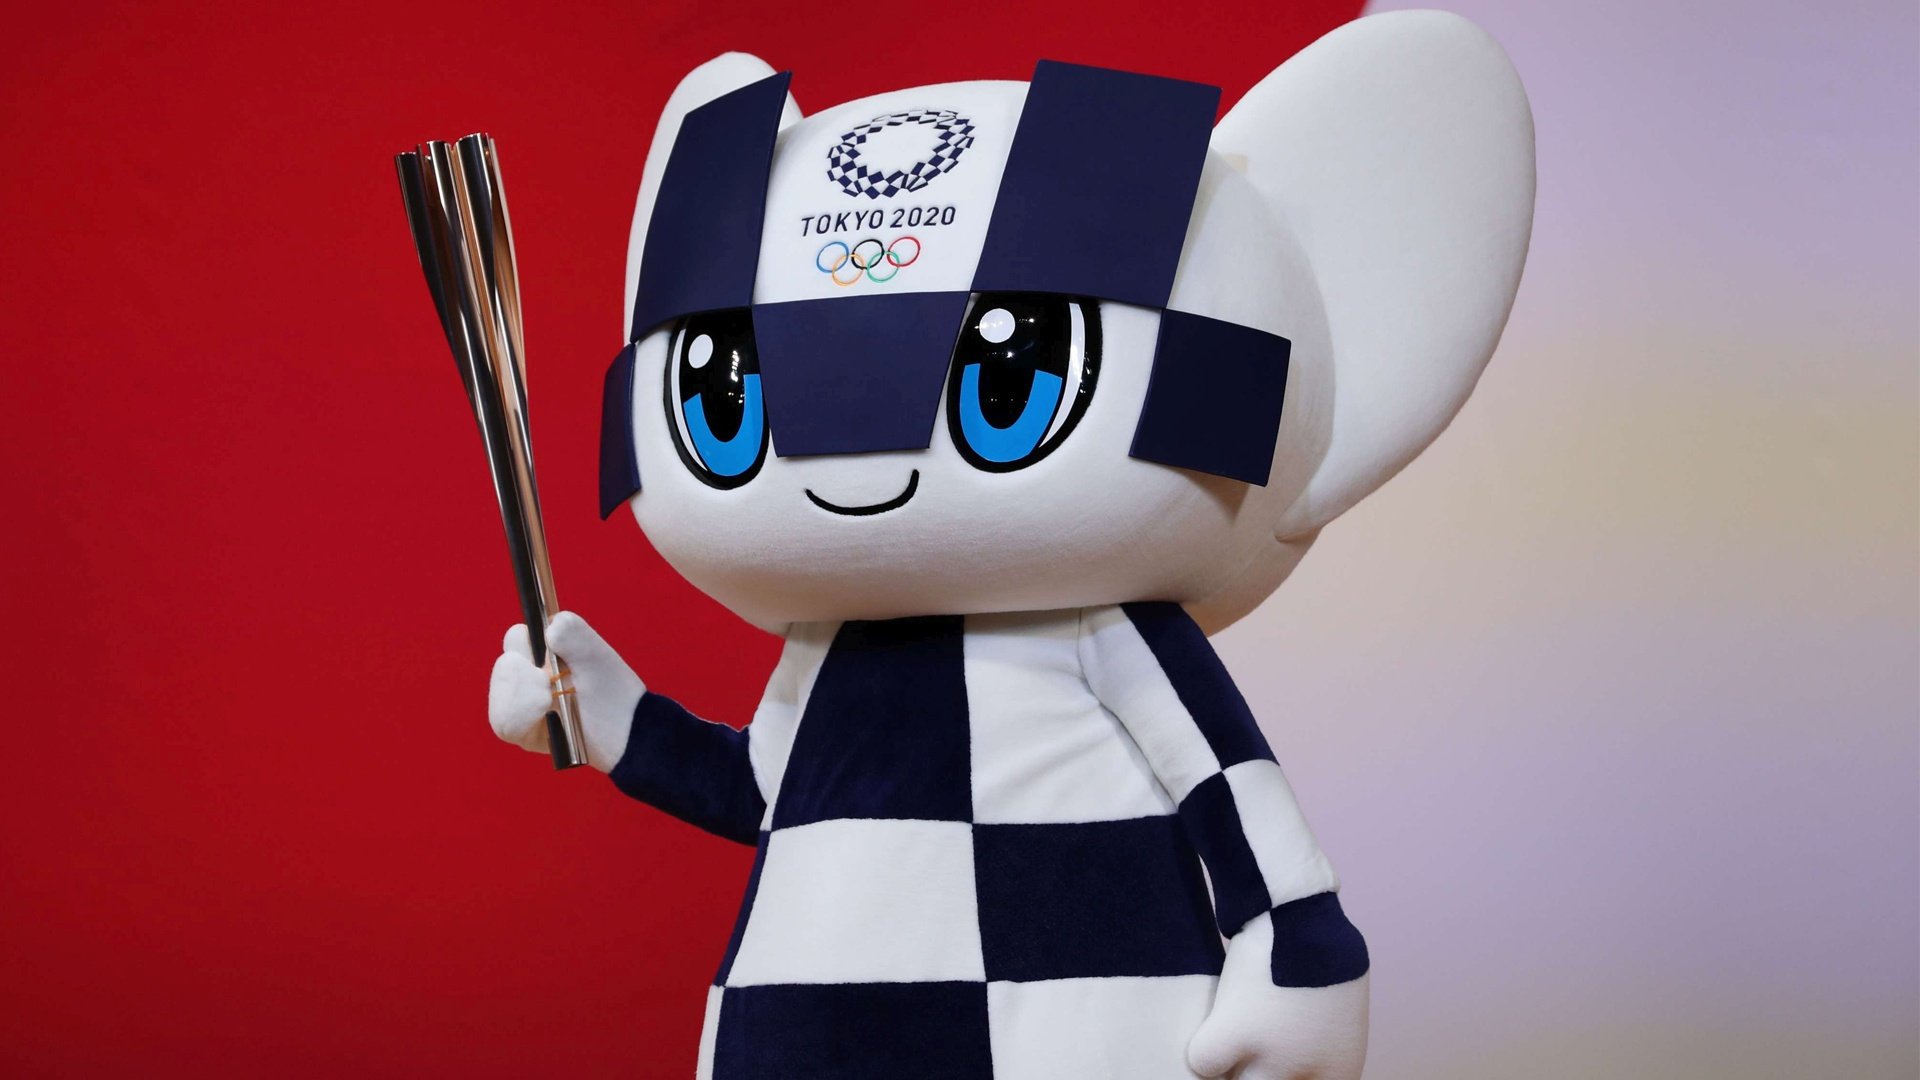 Tokyo 2020 Olympics background picture